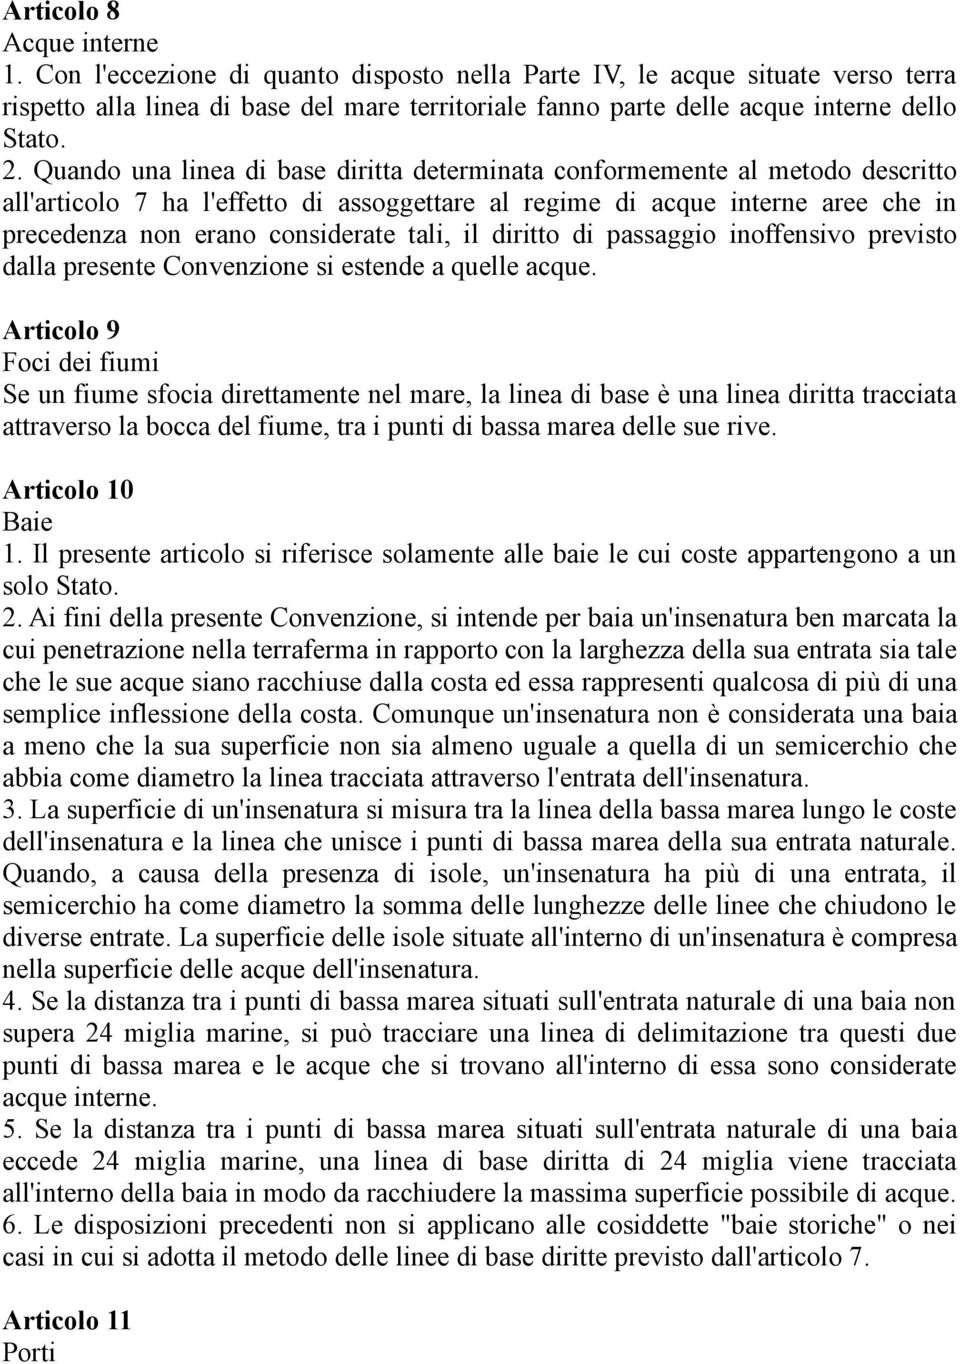 Quando una linea di base diritta determinata conformemente al metodo descritto all'articolo 7 ha l'effetto di assoggettare al regime di acque interne aree che in precedenza non erano considerate